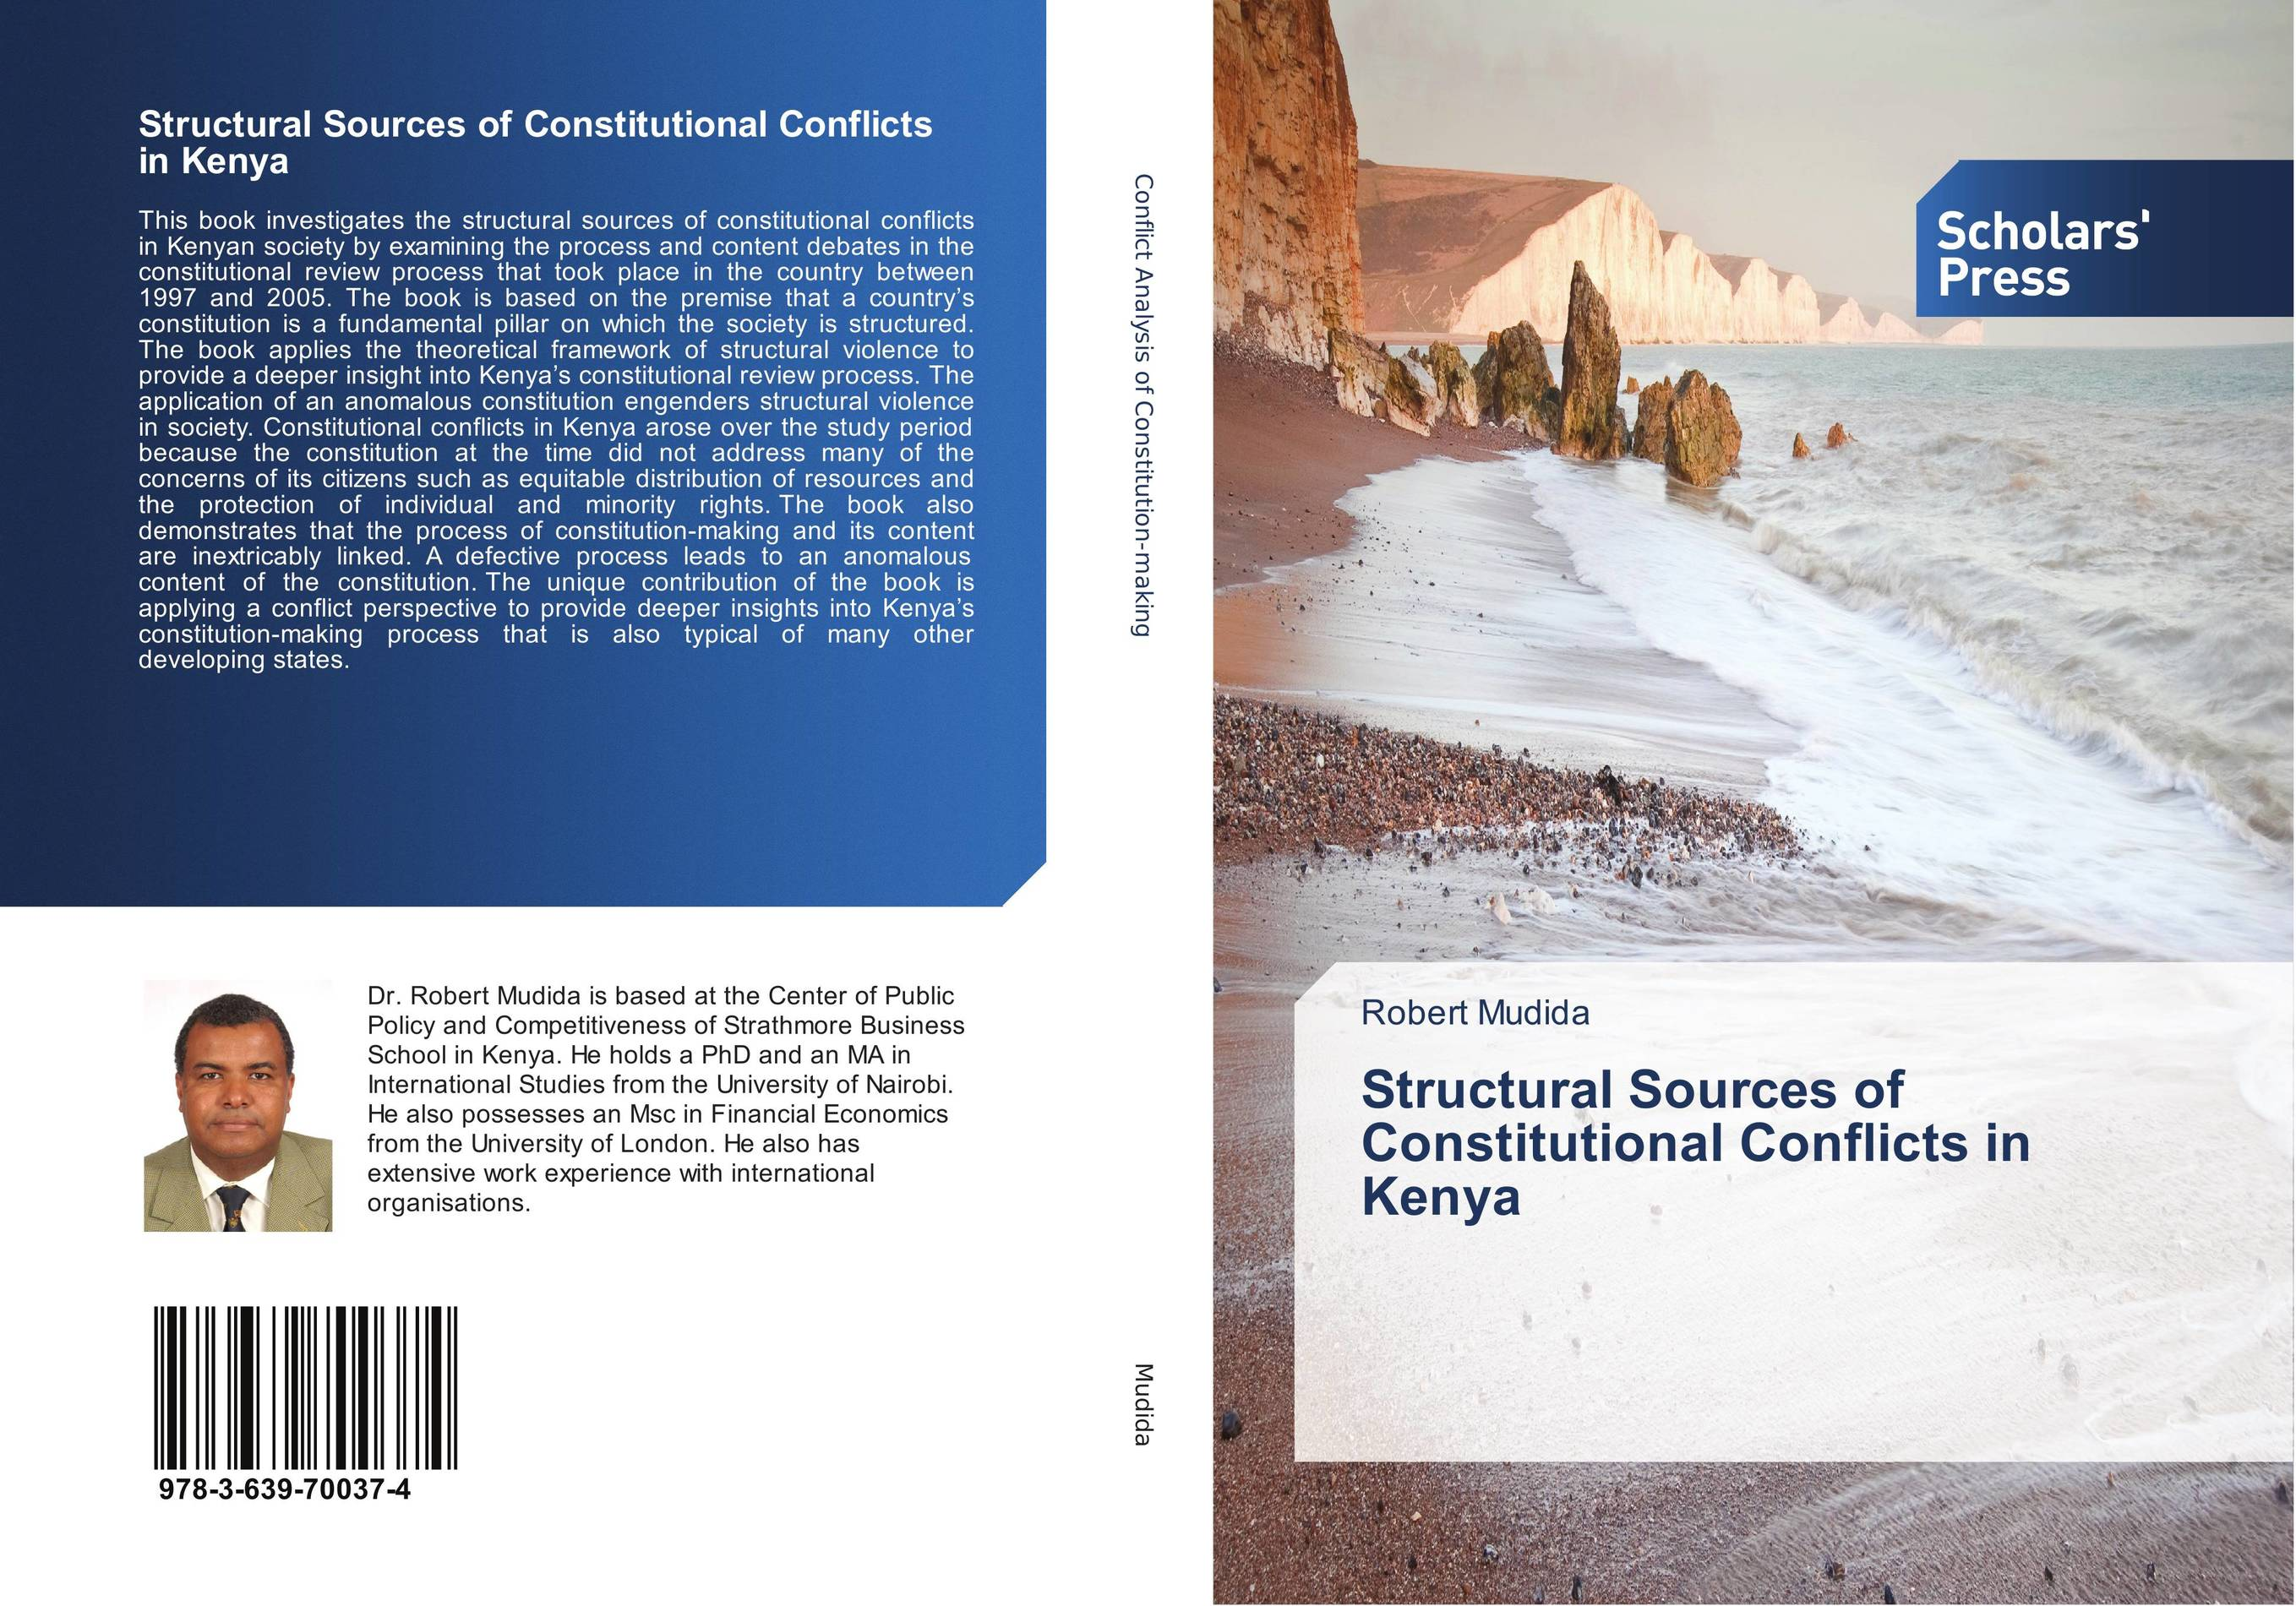 strengths and contributions of conflict theory in schooling in kenya Conflict management in kenya towards policy and strategy formulation by mohamud adan and ruto pkalya edited by elizabeth muli (jsd) kenya has experienced both internal conflict, cross border conflict and experienced the effects of conflict occurring in neighboring states.